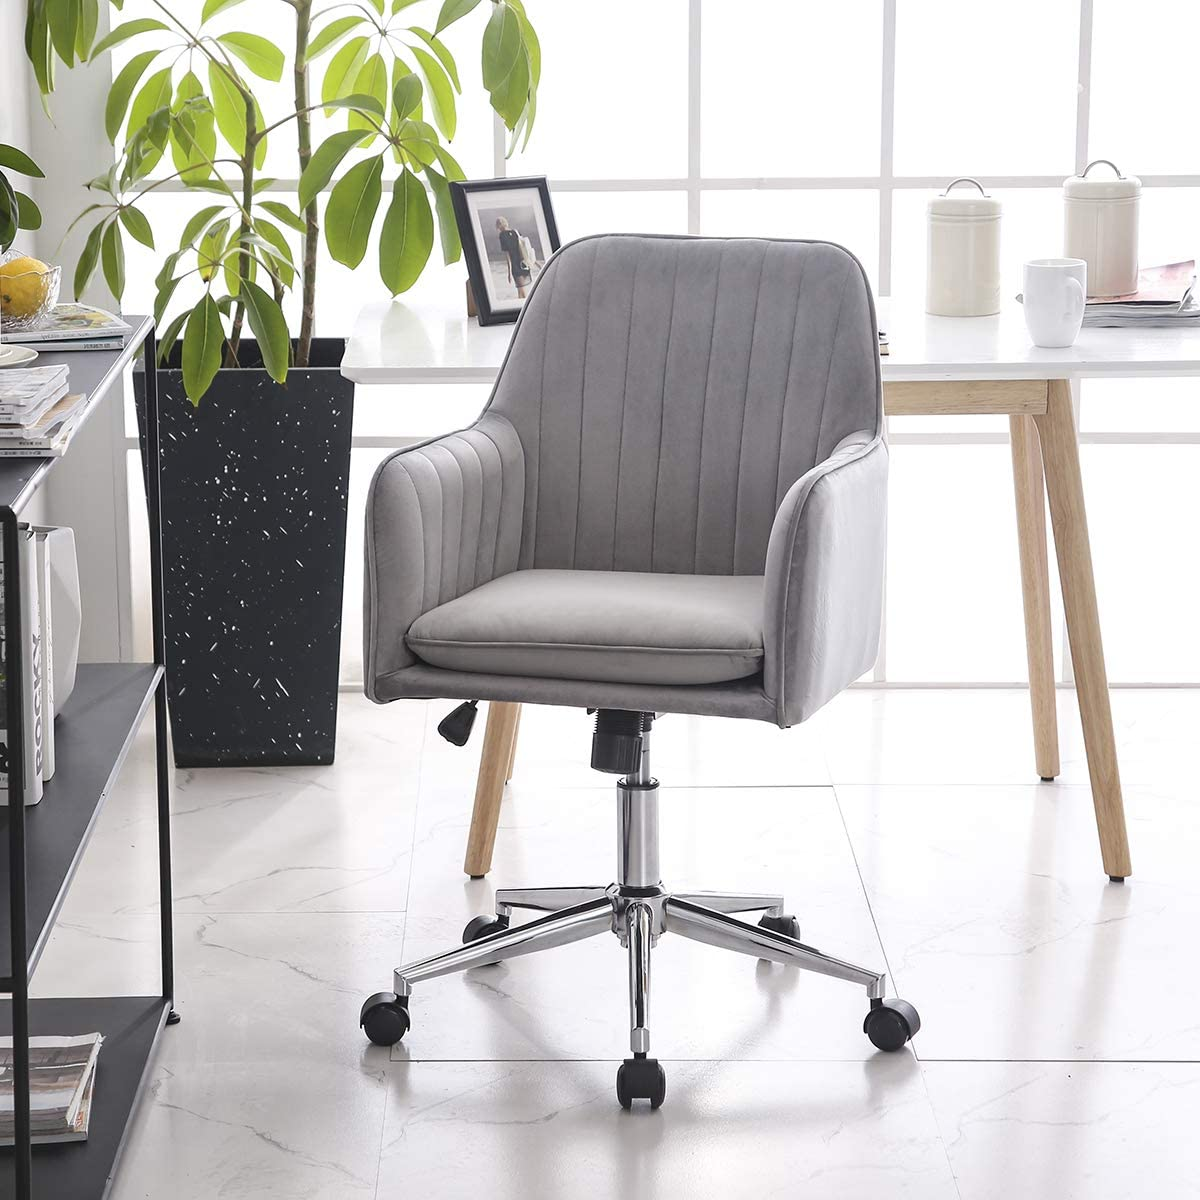 Hironpal Modern Velvet Office Chair Armchair Office Living Room Bedroom  Accent Chair Ergonomics With Wheels Adjustable Rotary Lifter (Grey)